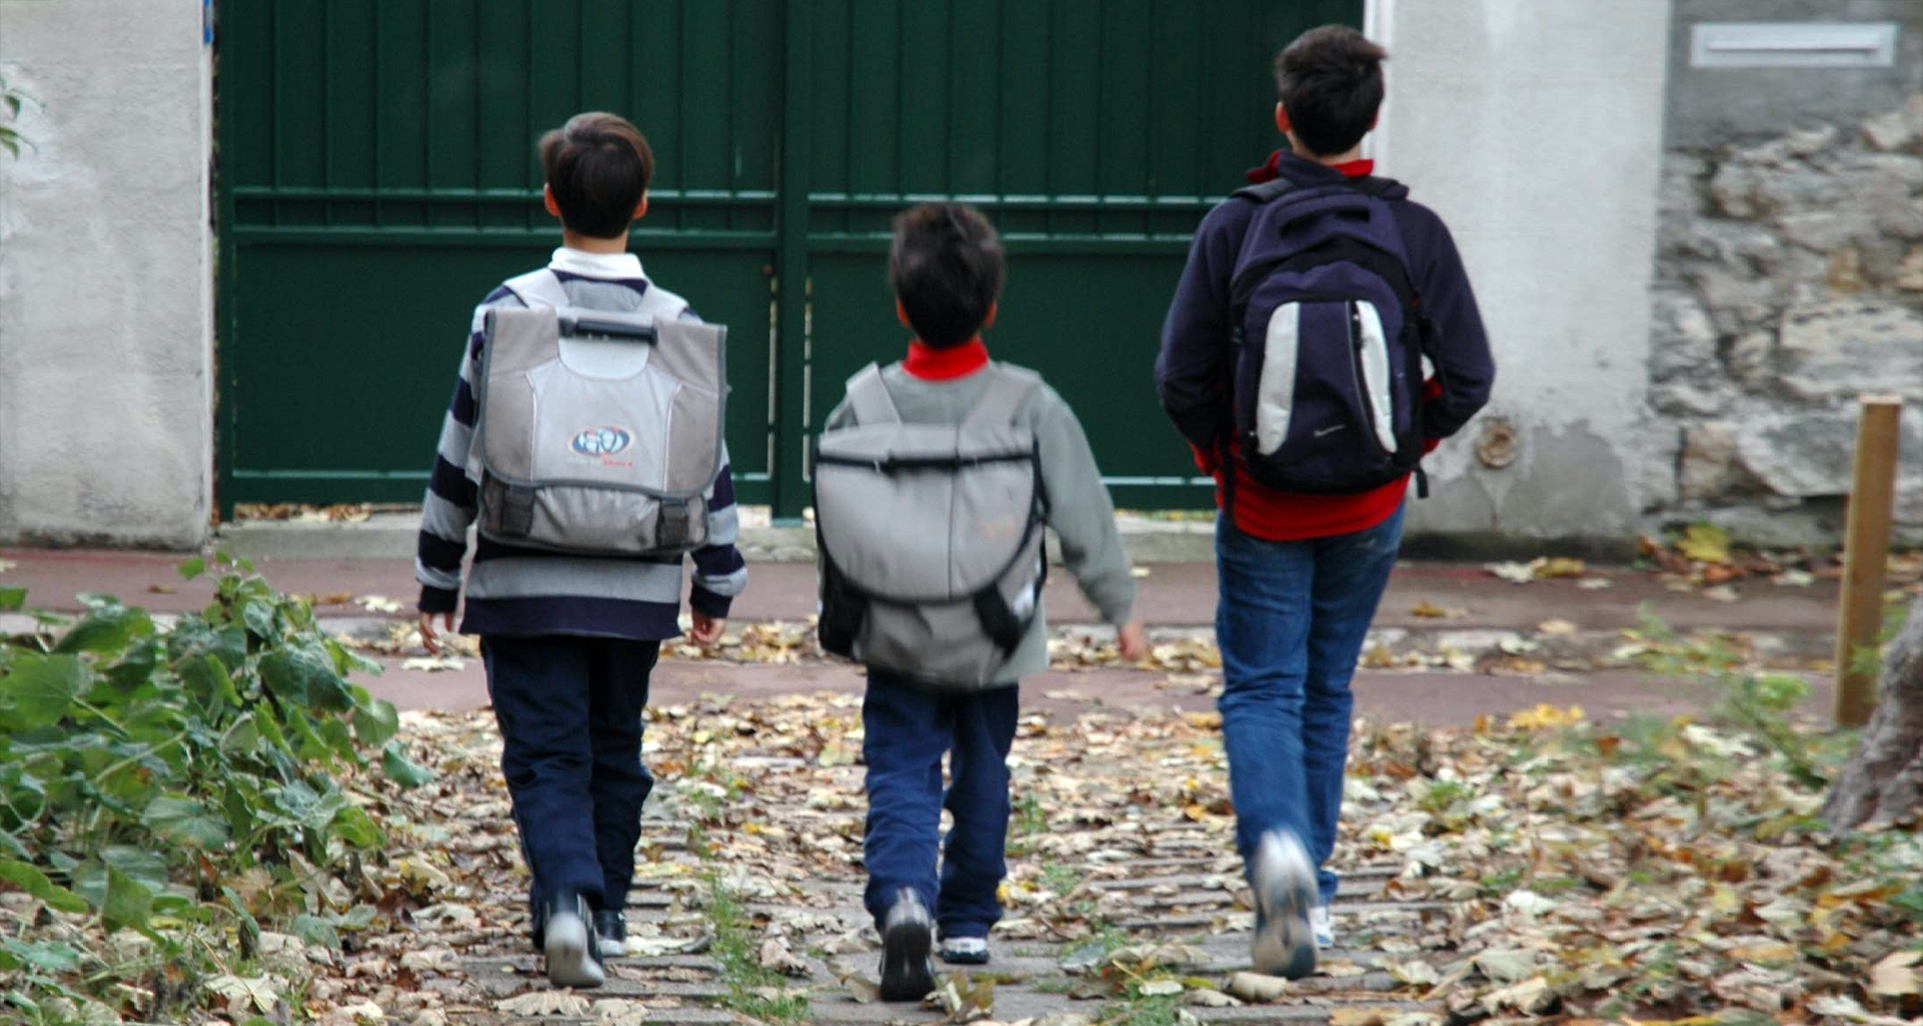 French boys off to school